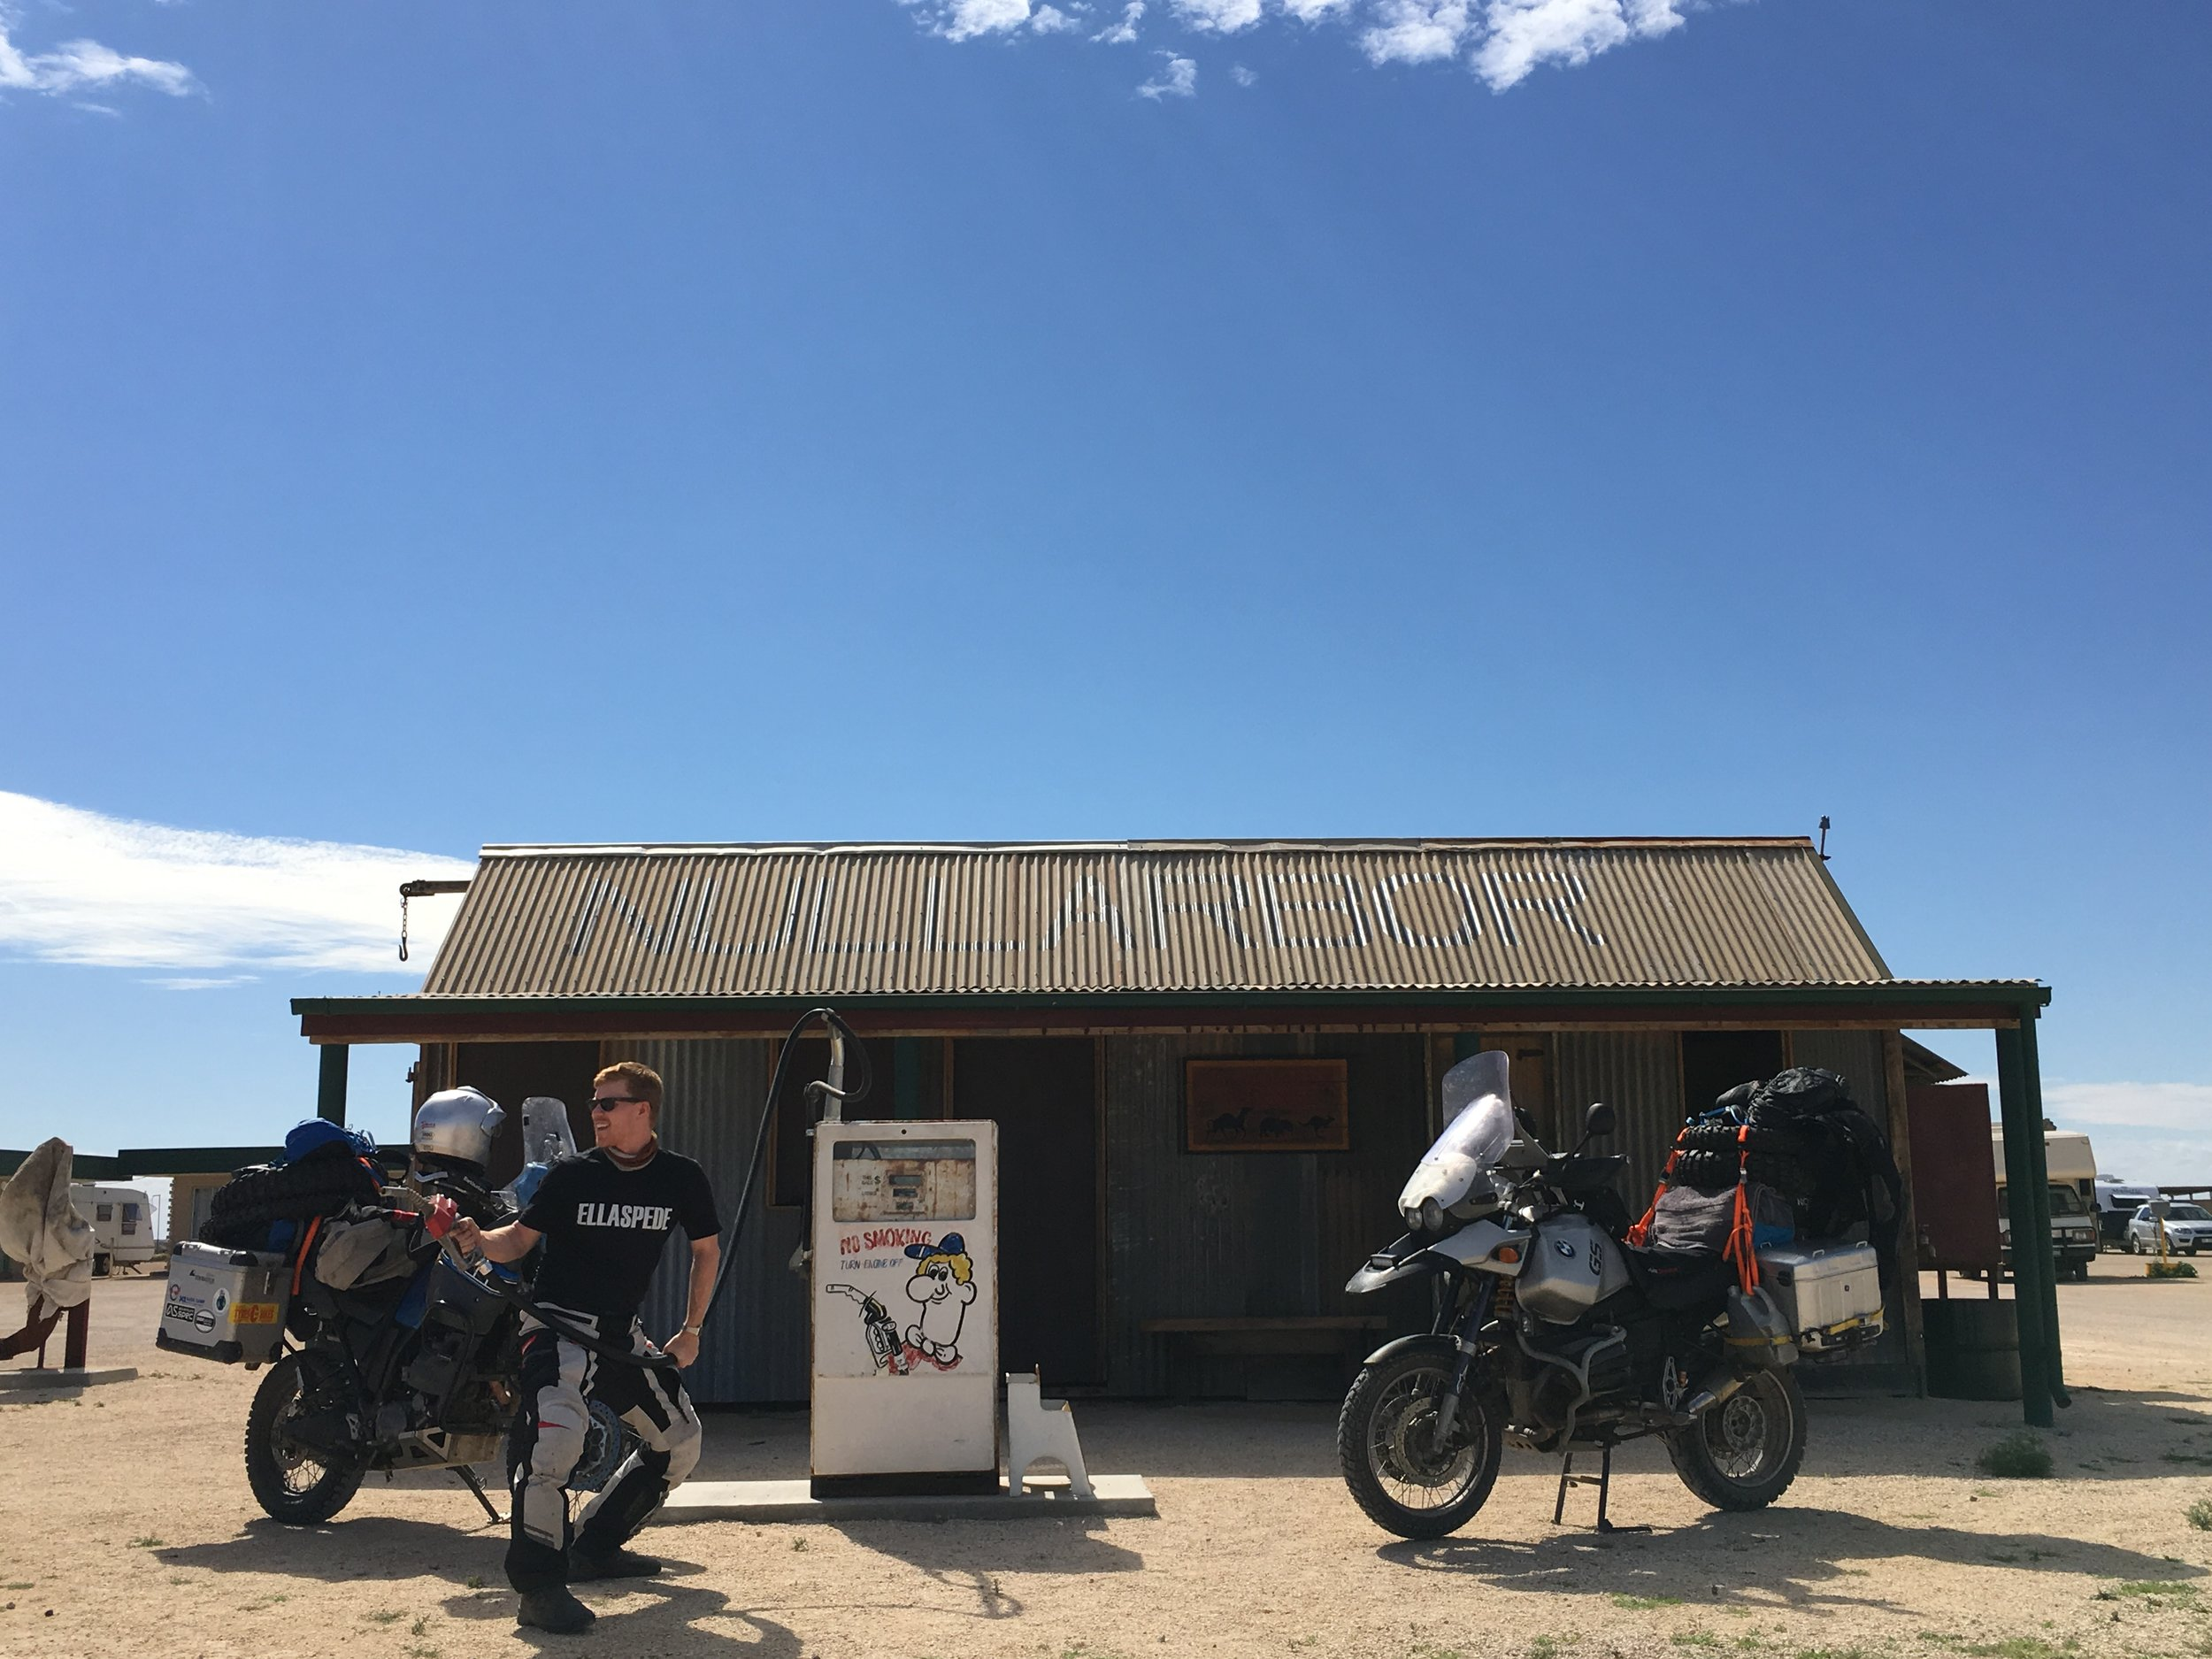 The iconic Nullarbor roadhouse